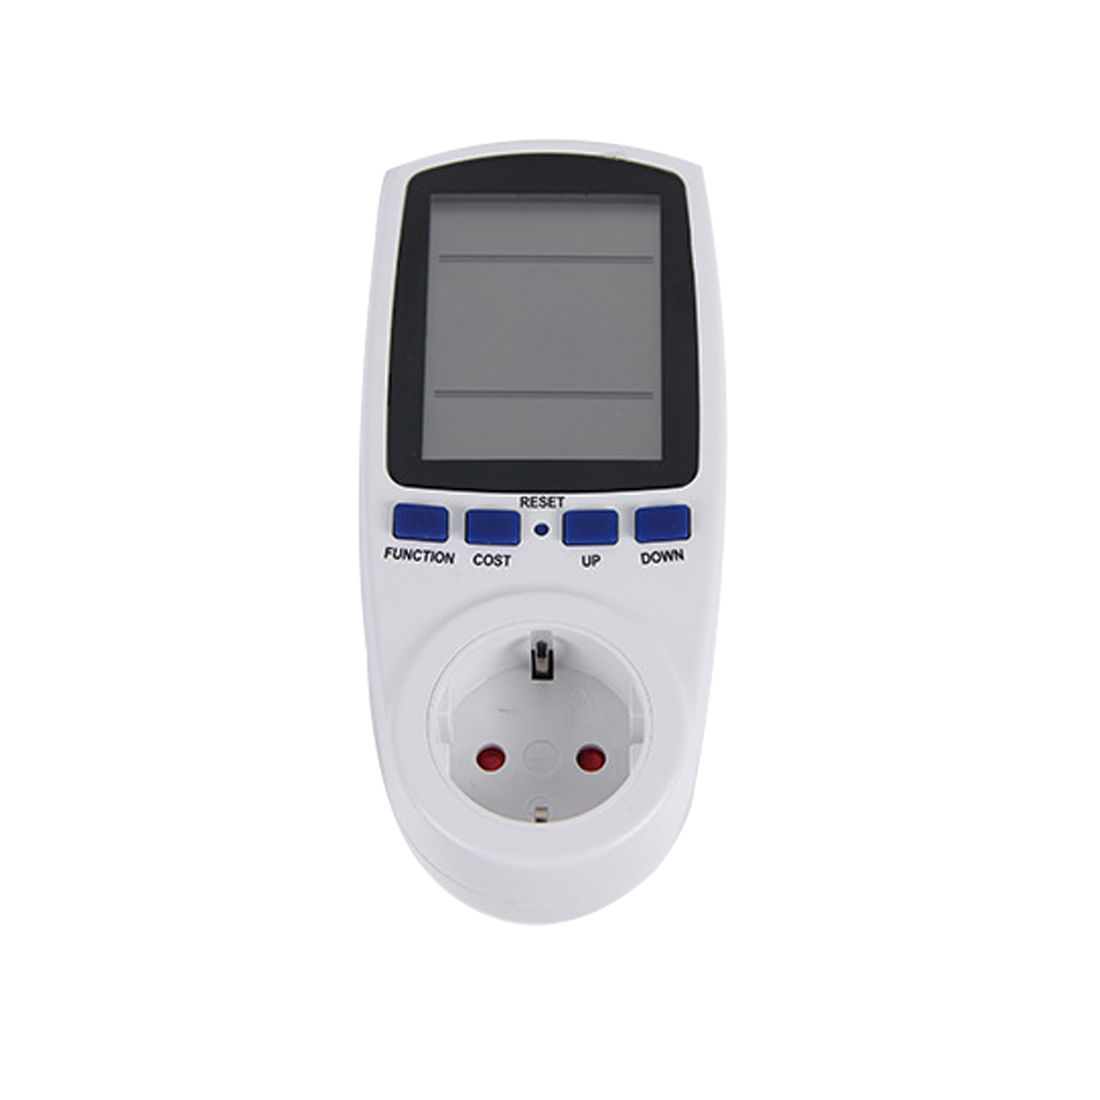 AC Power Meter 220V Digital Wattmeter EU Energy Meter Watt Monitor Electricity Consumption Measuring Socket Analyzer conspicuous consumption